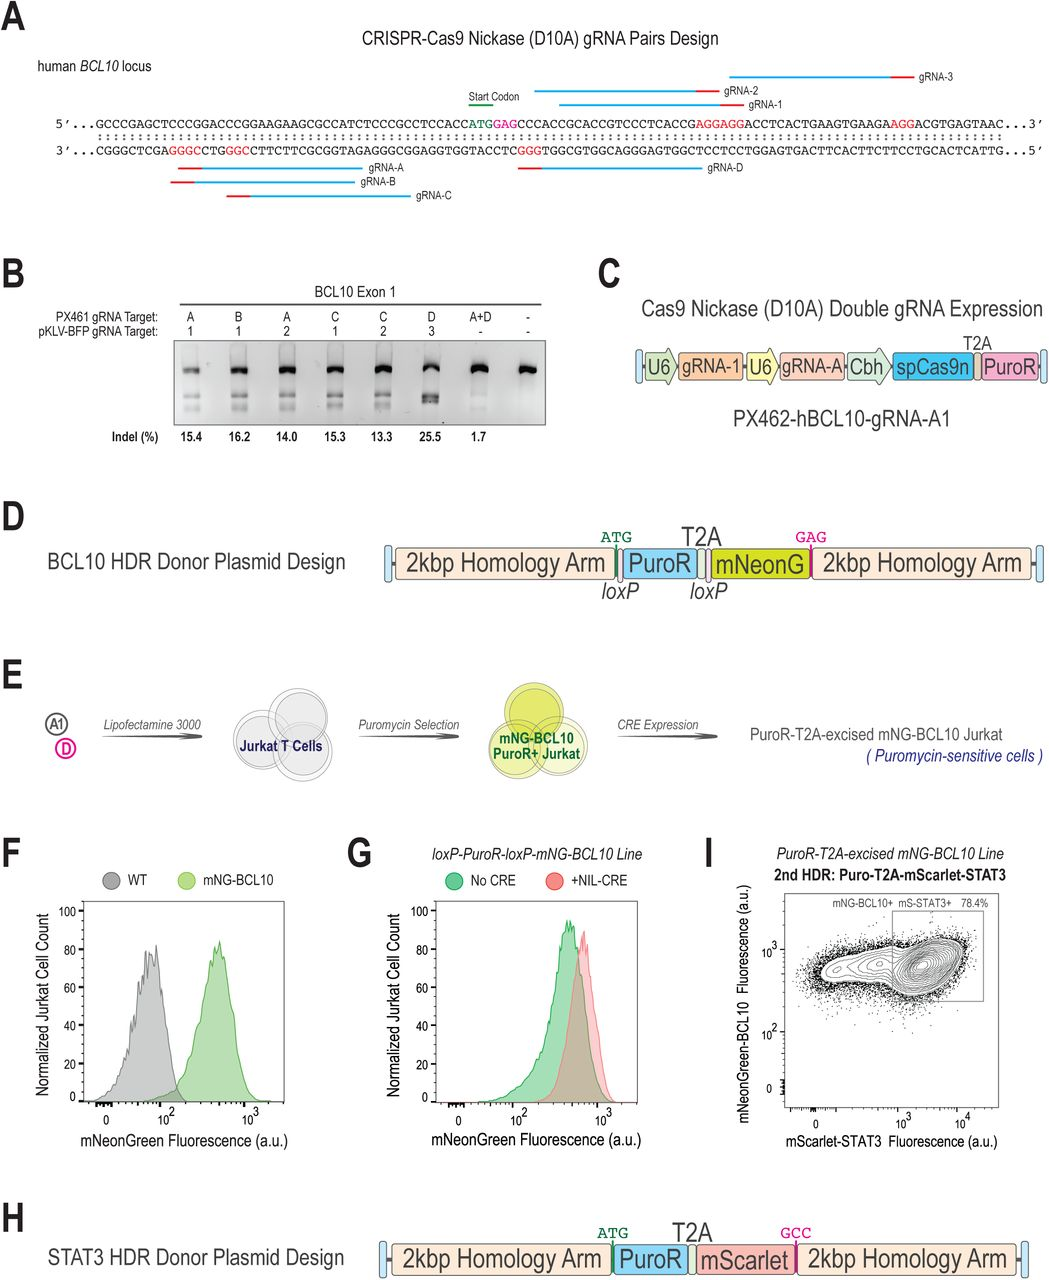 CRE-loxP excision strategy minimizes genomic footprint of the PuroR selection cassette and allows for multiple rounds of genome editing. (A) Cas9 nickase gRNA pair design targeting the human BCL10 locus. (B) T7EN assay for locus-specific editing in HEK293T cells. (C) Double gRNAs and Cas9-D10A nickase expression plasmid derived from the PX462 backbone. (D) BCL10 HDR donor plasmid design. (E) Strategy for creating puromycin-selected Jurkat T cells with post-selection excision of the Puro-T2A cassette. (F)(G) mNeonGreen expression by puromycin-selected mNG-BCL10 knock-in Jurkat line with or without NIL-CRE treatment. (H) Modified STAT3 HDR donor plasmid. (I) mNeonGreen and mScarlet co-expression by puromycin-selected mScarlet-STAT3/mNG-BCL10 double knock-in Jurkat line.